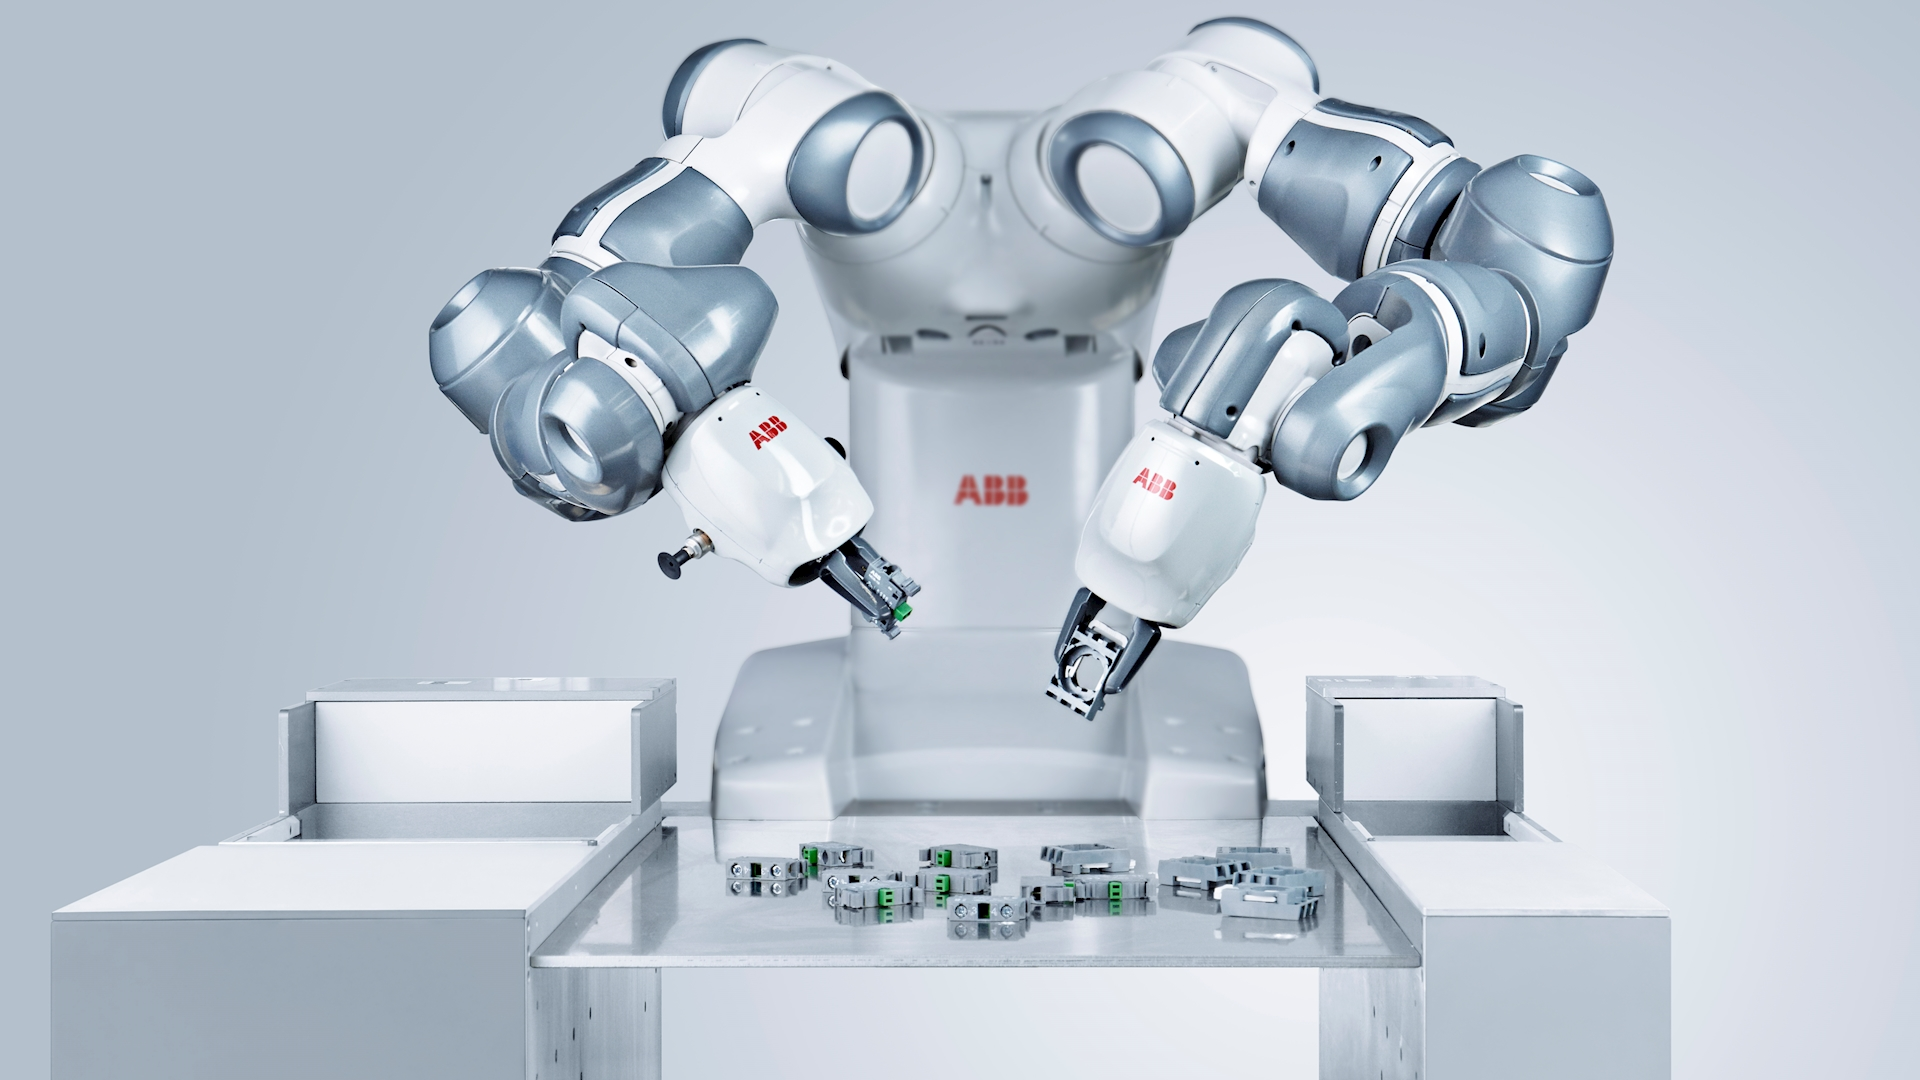 Industry Drivers All Point To Growth Says Abb Rep At